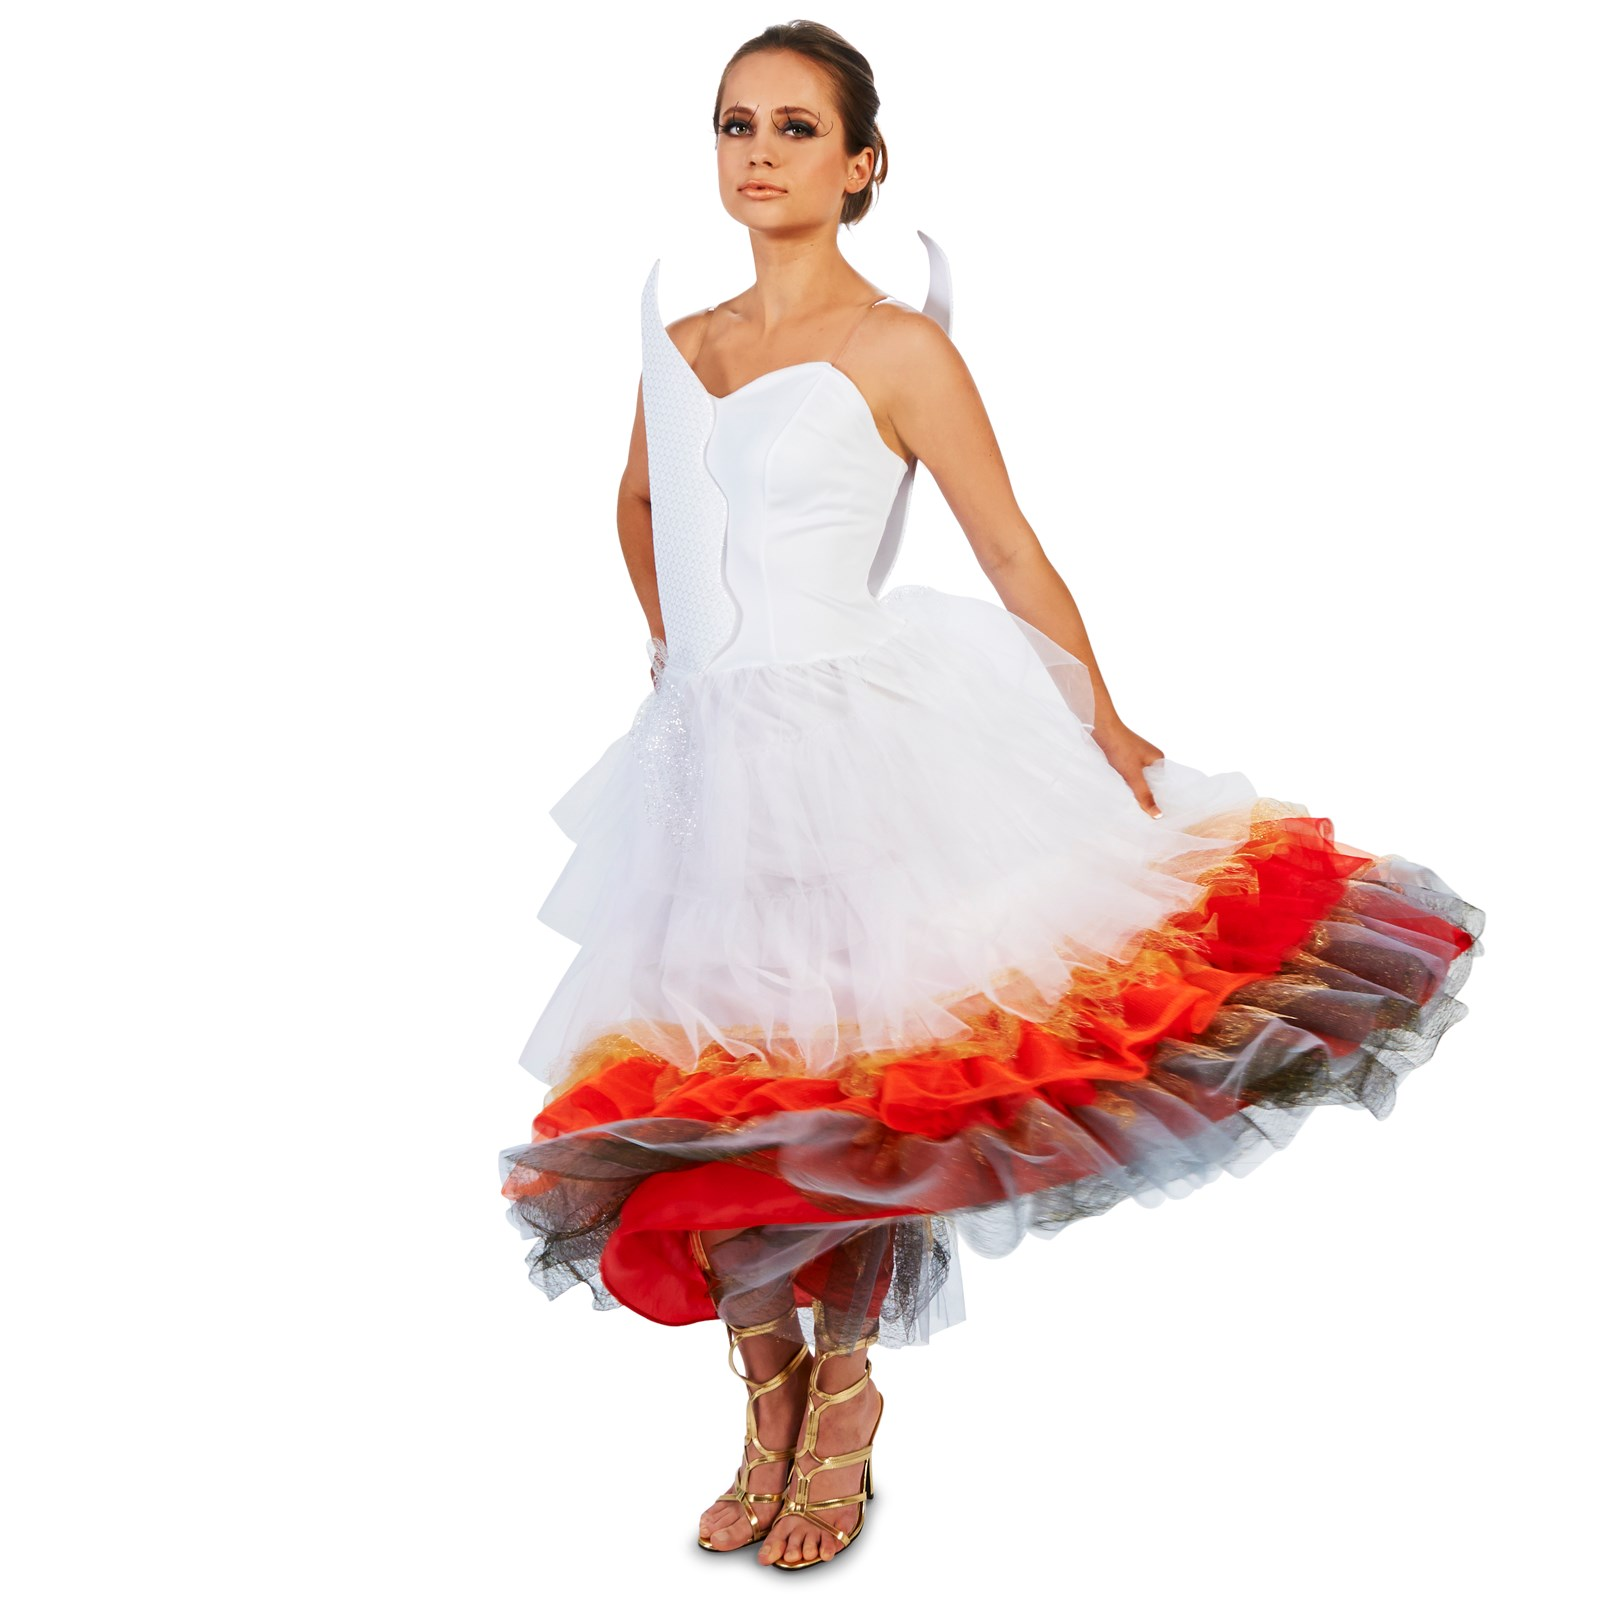 Flaming winged wedding dress adult costume buycostumescom for Wedding dress costume for adults